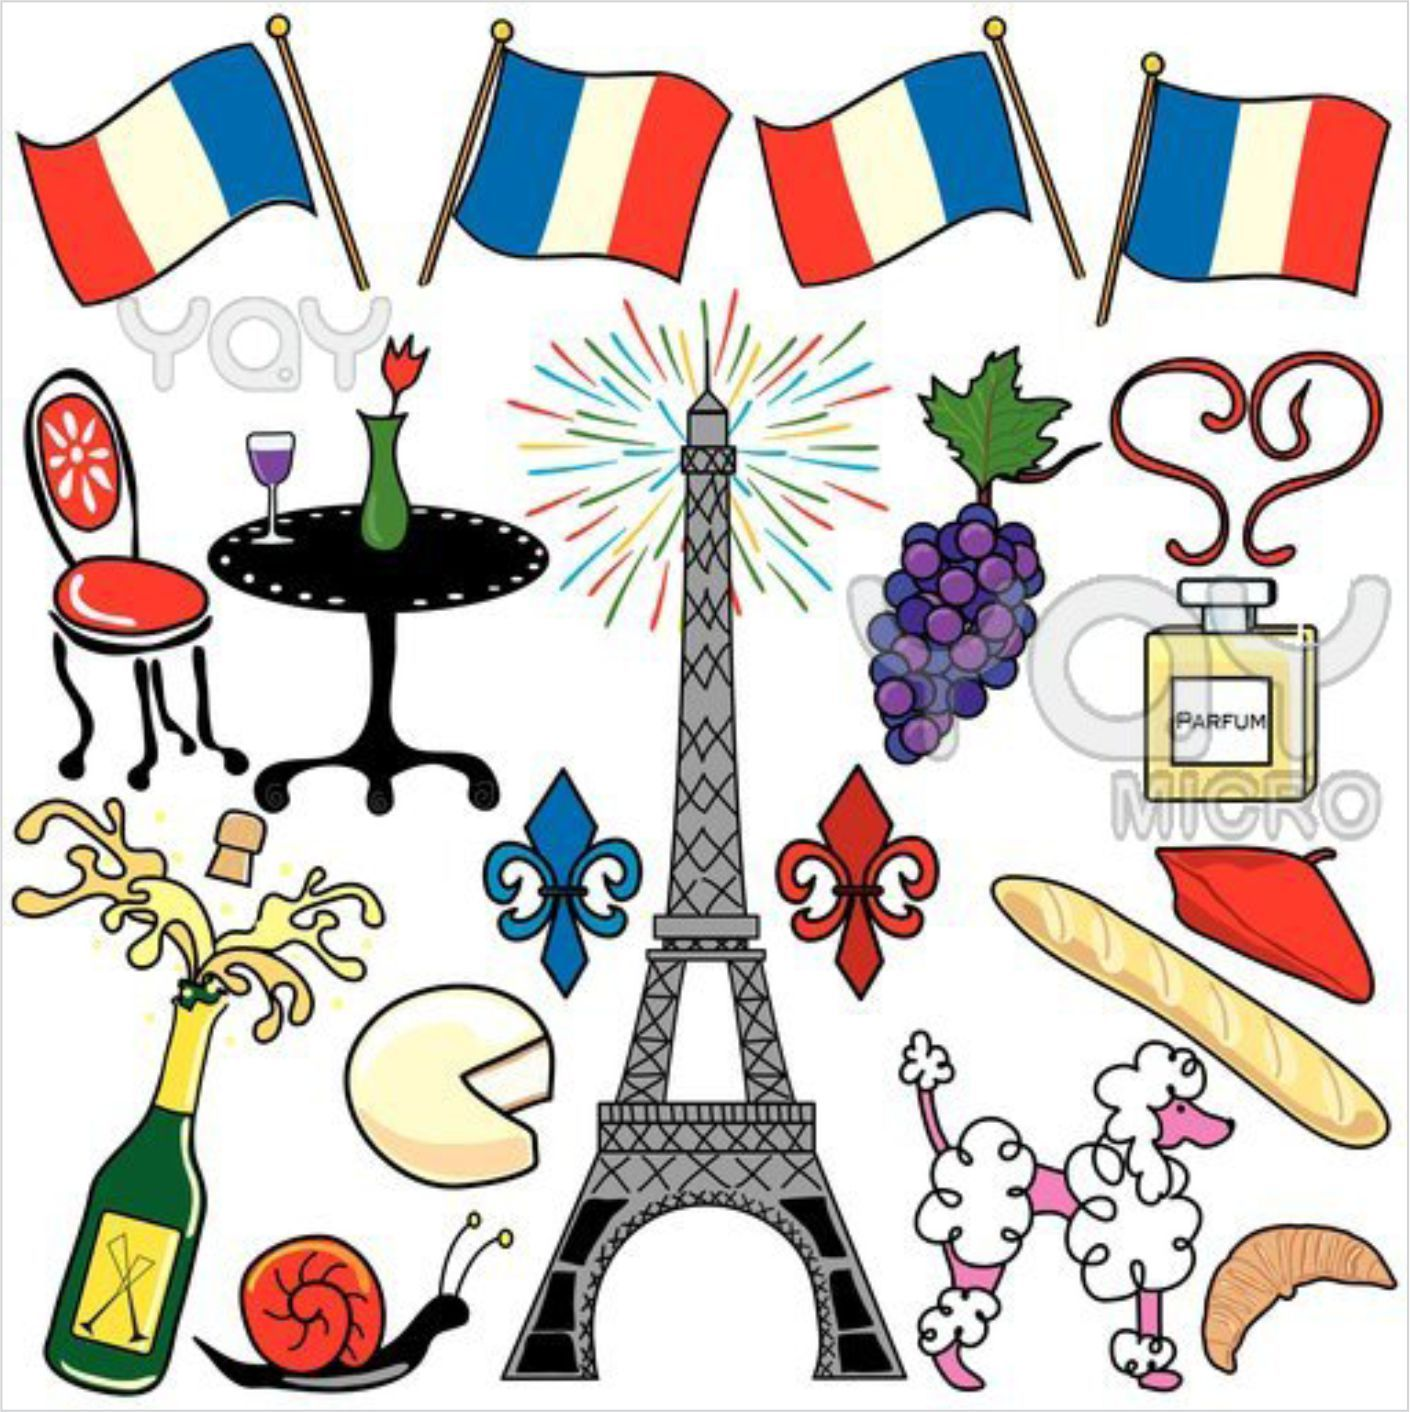 Clipart gallery famous artist. Image result for french